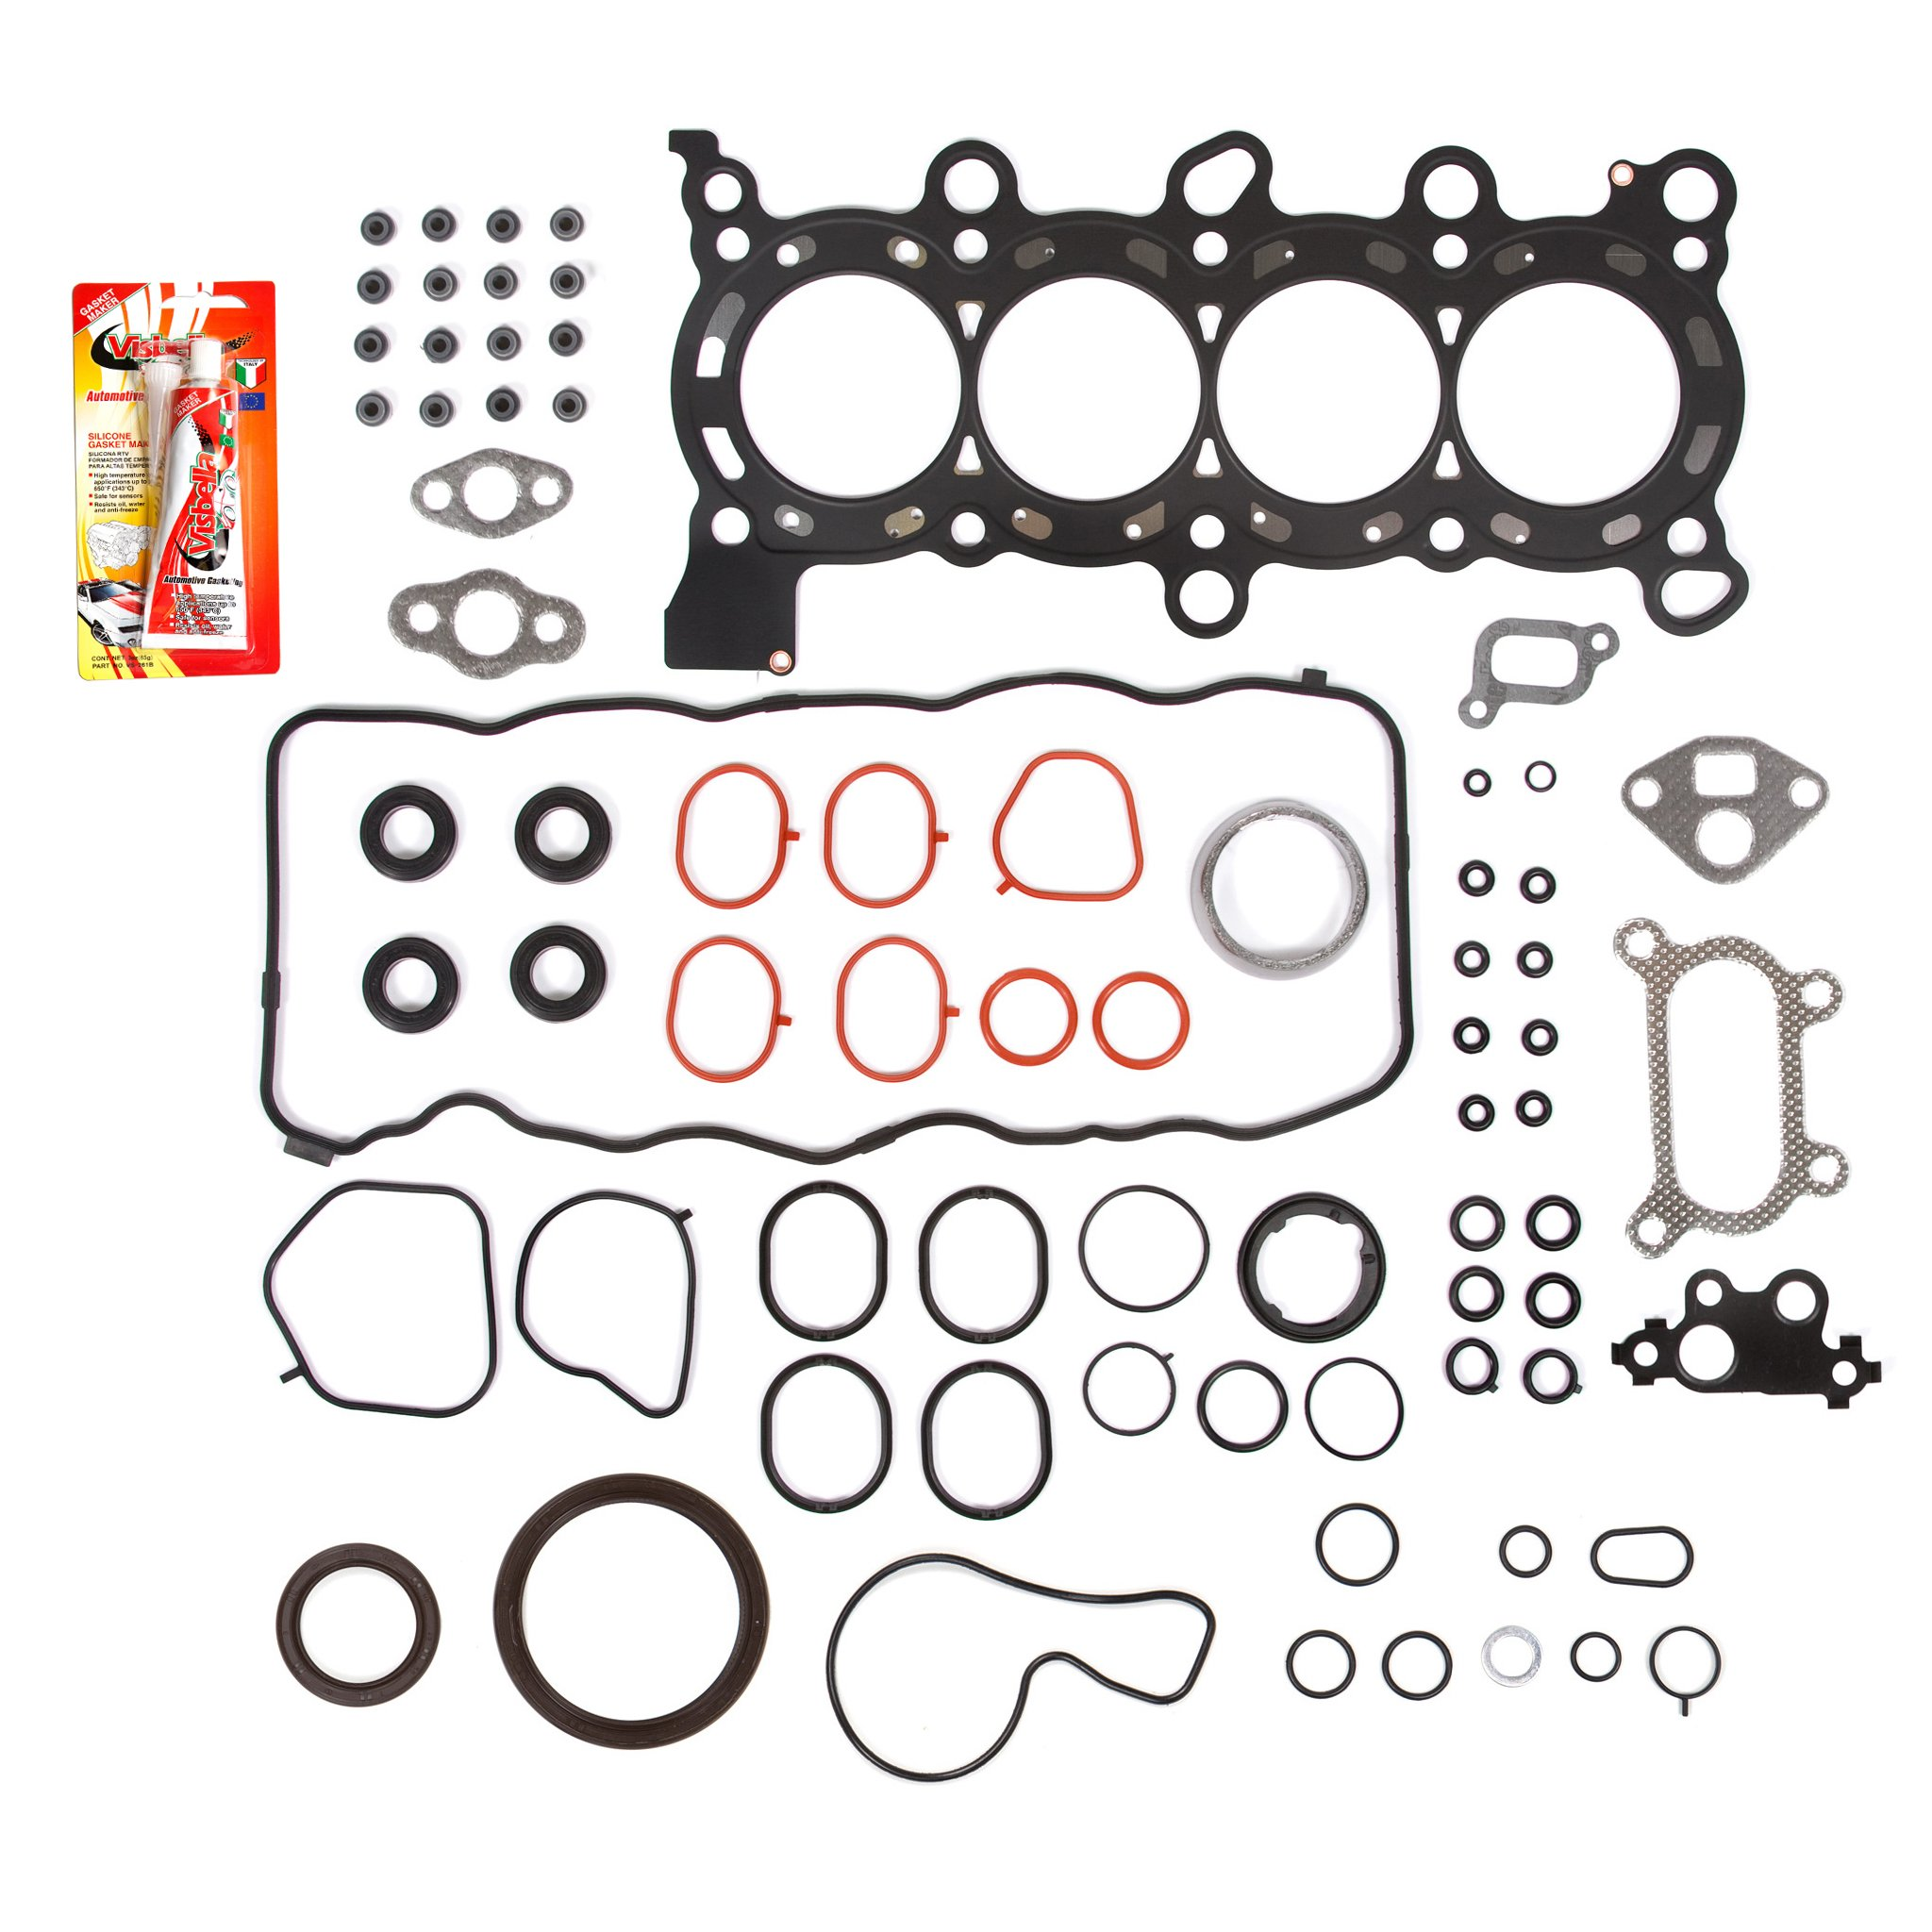 06-11 Honda Civic EX DX GX LX 1.8 SOHC R18A1, R18A4 MLS Full Gasket Set by Domestic Gaskets